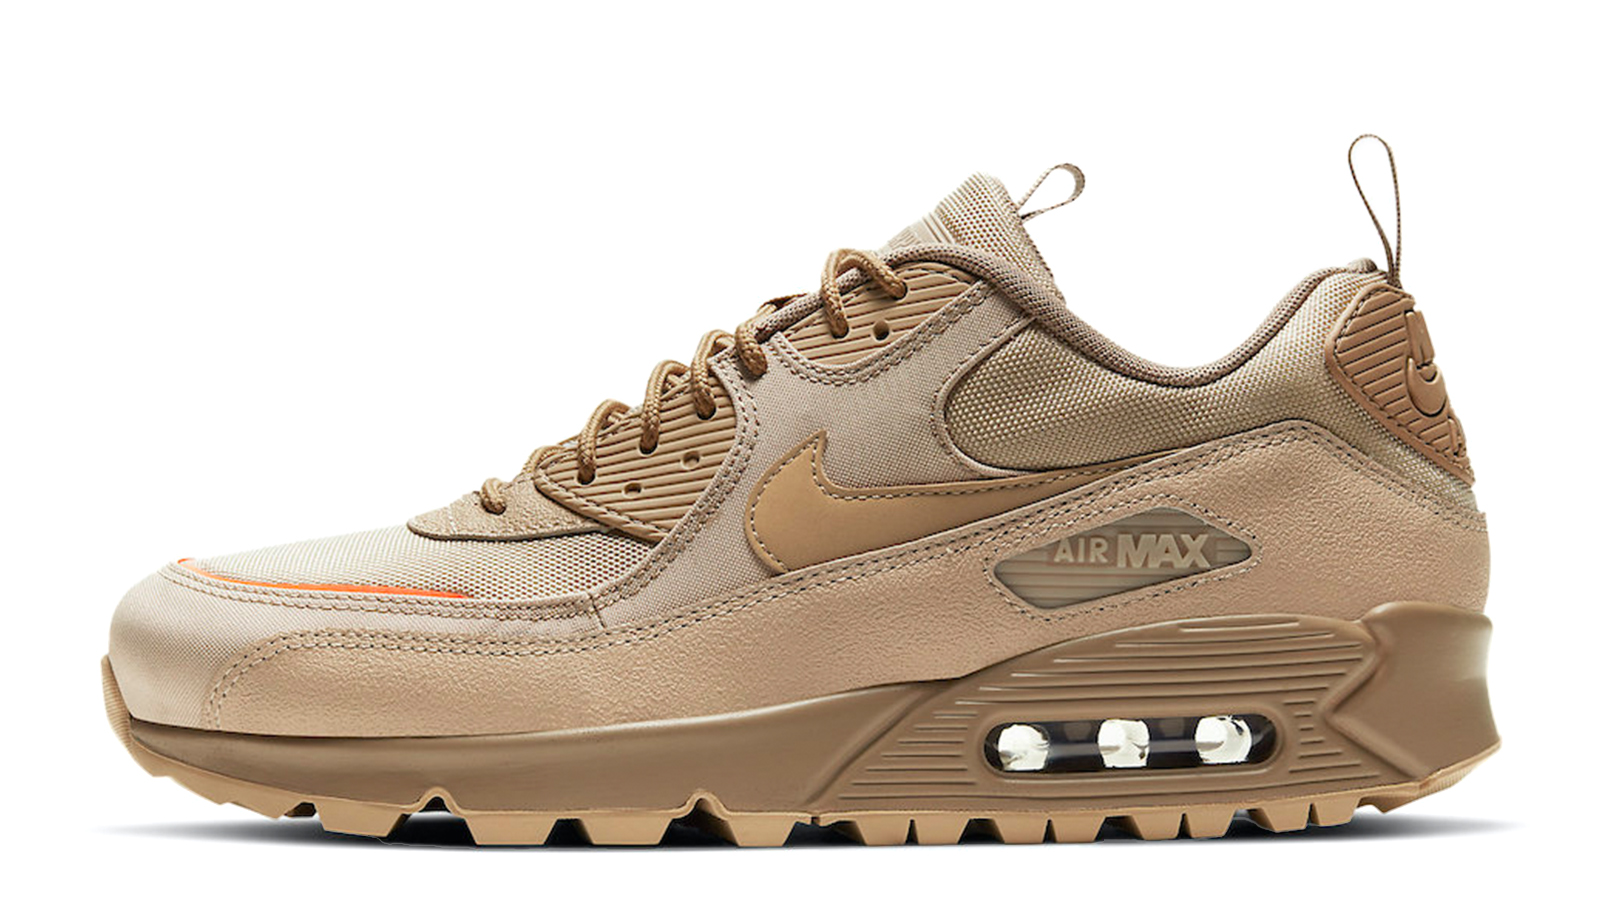 Nike Air Max 90 Desert Surplus CQ7743-200